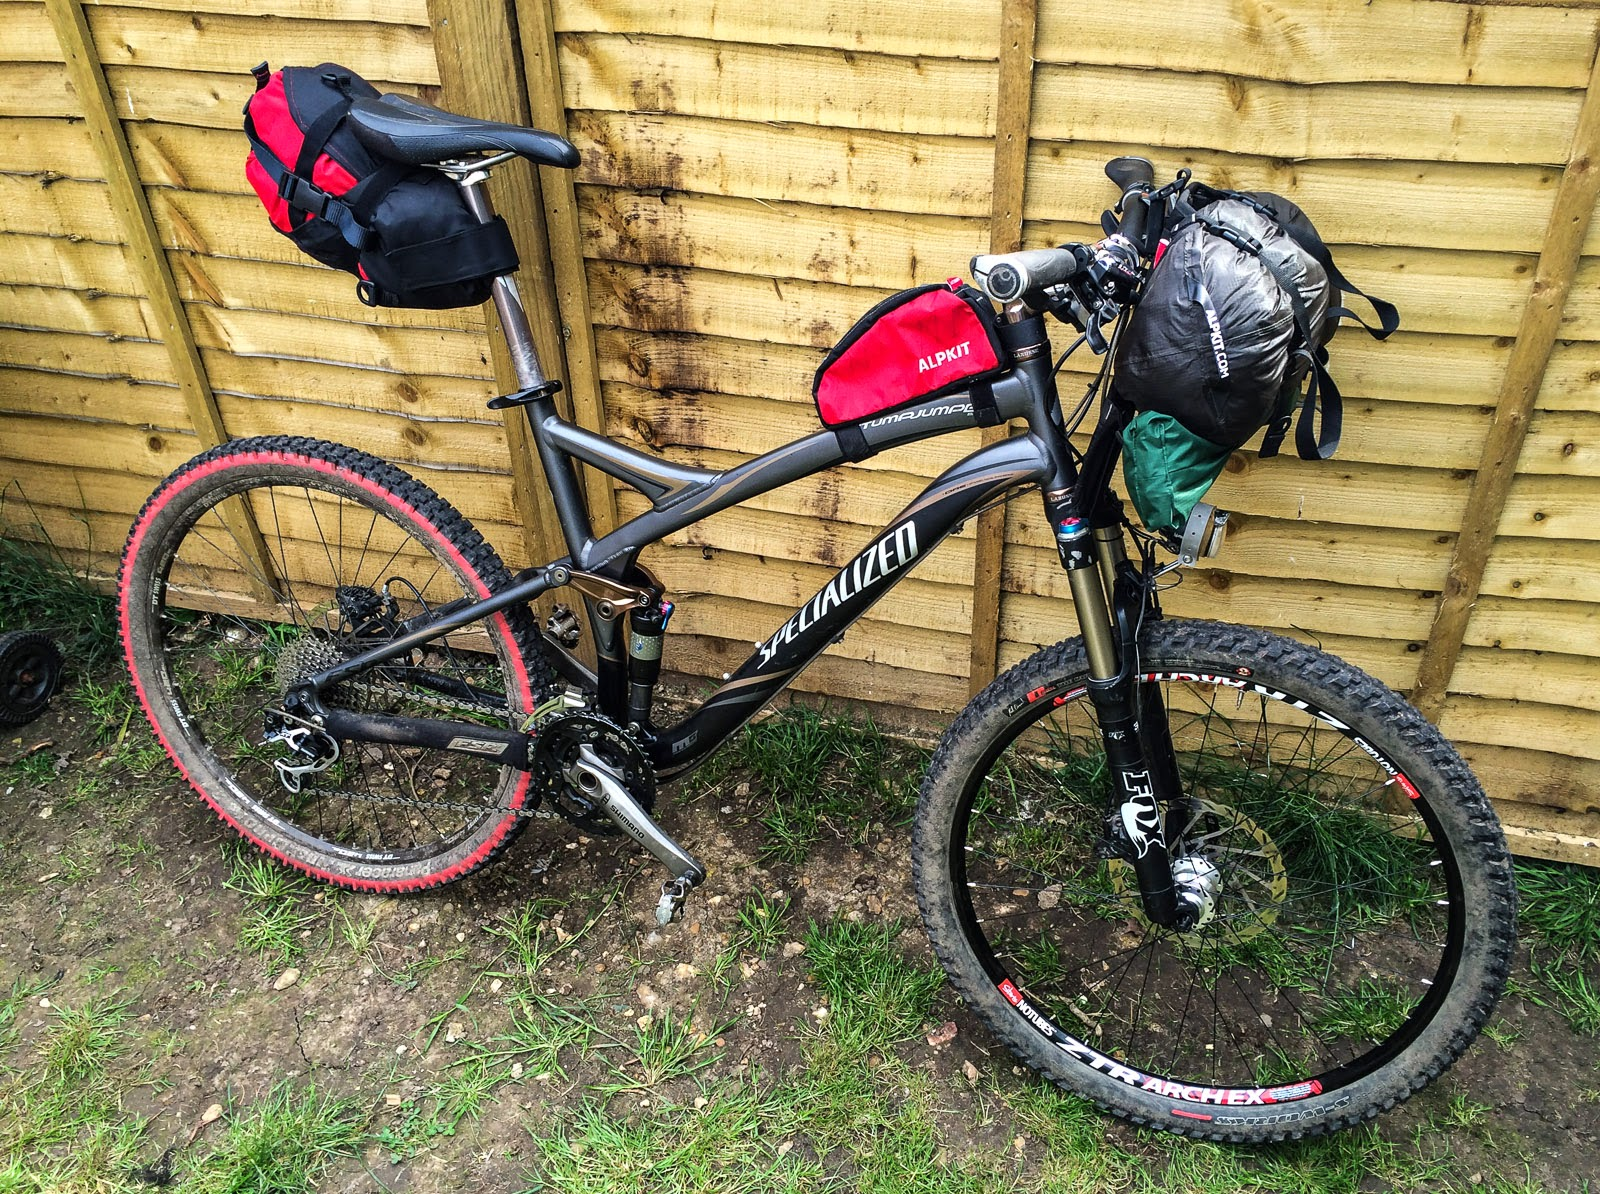 Photo: All packed and ready to go get ridiculously muddy!